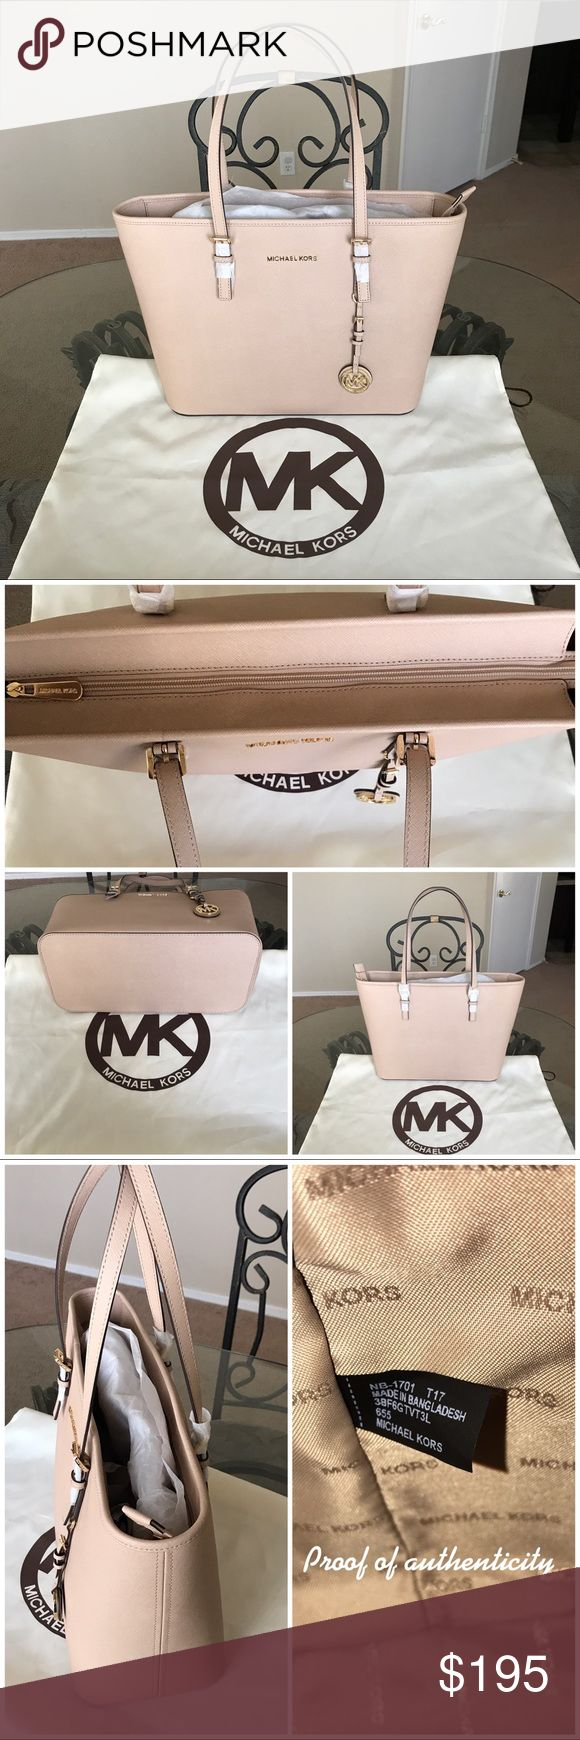 NWOT MK jet set tote Color is blush with gold hardware  Brand new! Tags fell off but as you can see in the photos, it's still in original wrapping  Measures approx: 17x 10 1/2x 6  Comes with a Dustbag  No trades!  Open to reasonable offers but I will not discuss price in the comments. Please use the offer button! Michael Kors Bags Totes